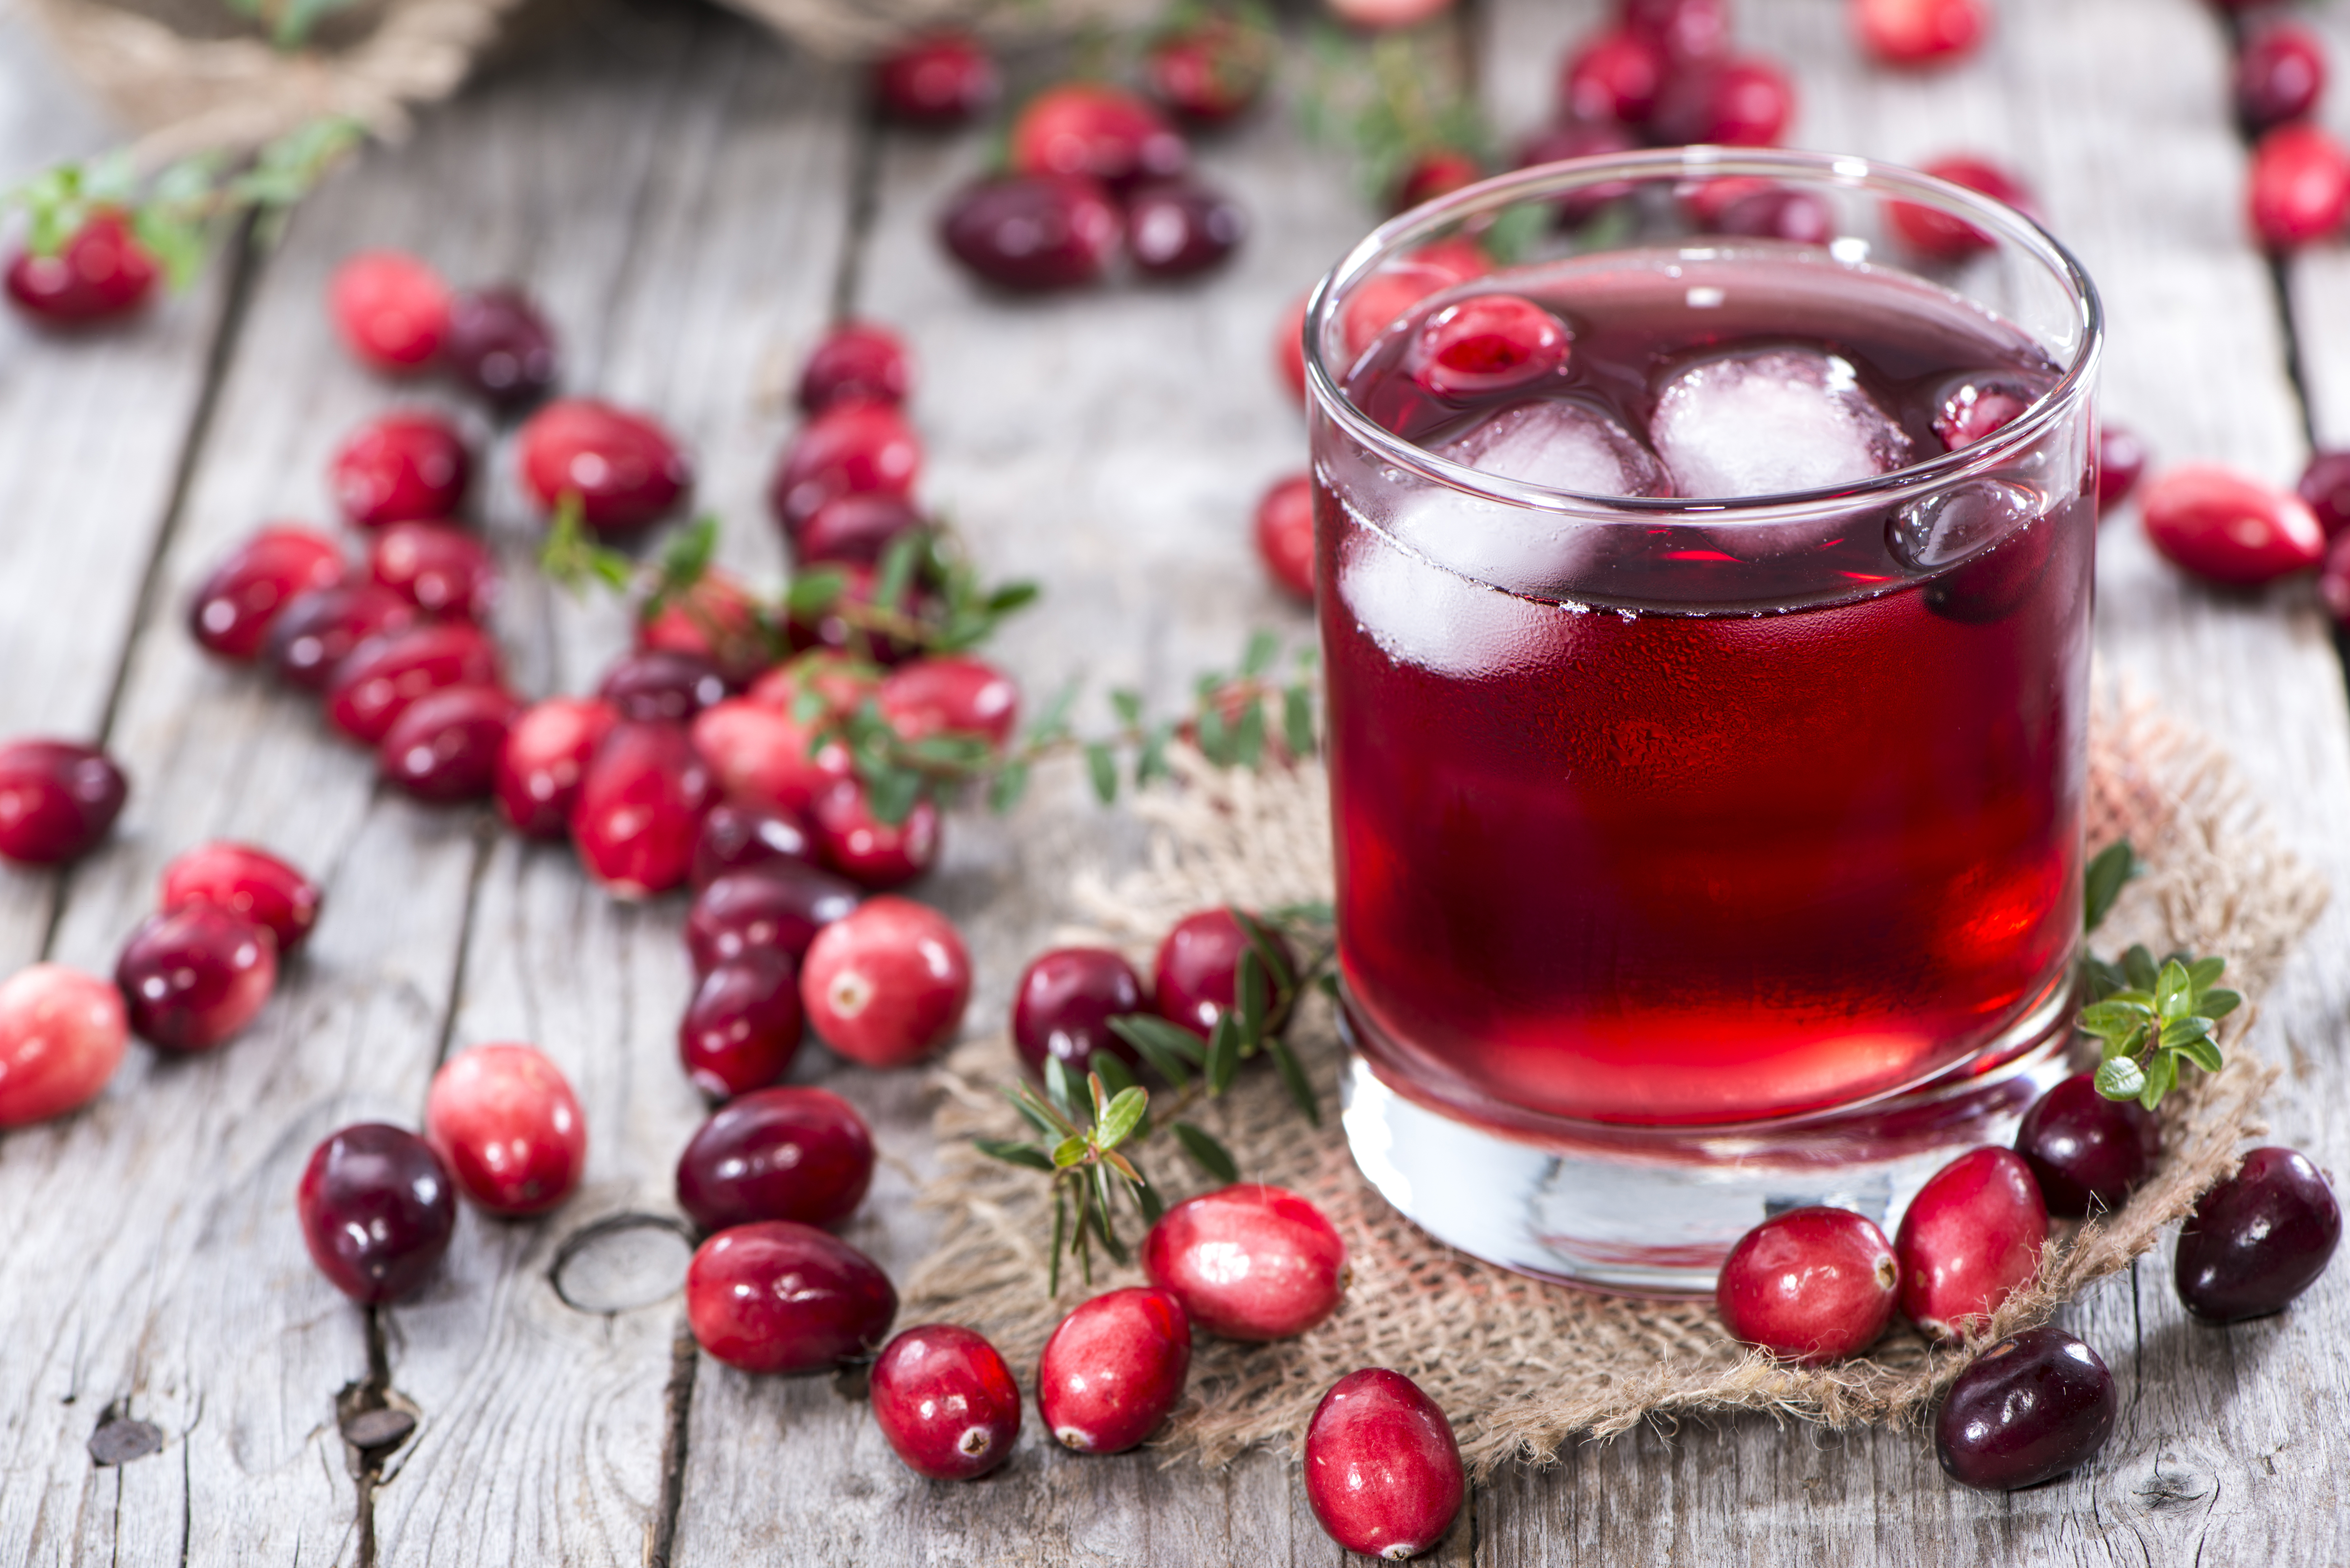 Does Drinking Cranberry Juice Increase Your Blood Sugar Level? | Healthy  Eating | SF Gate